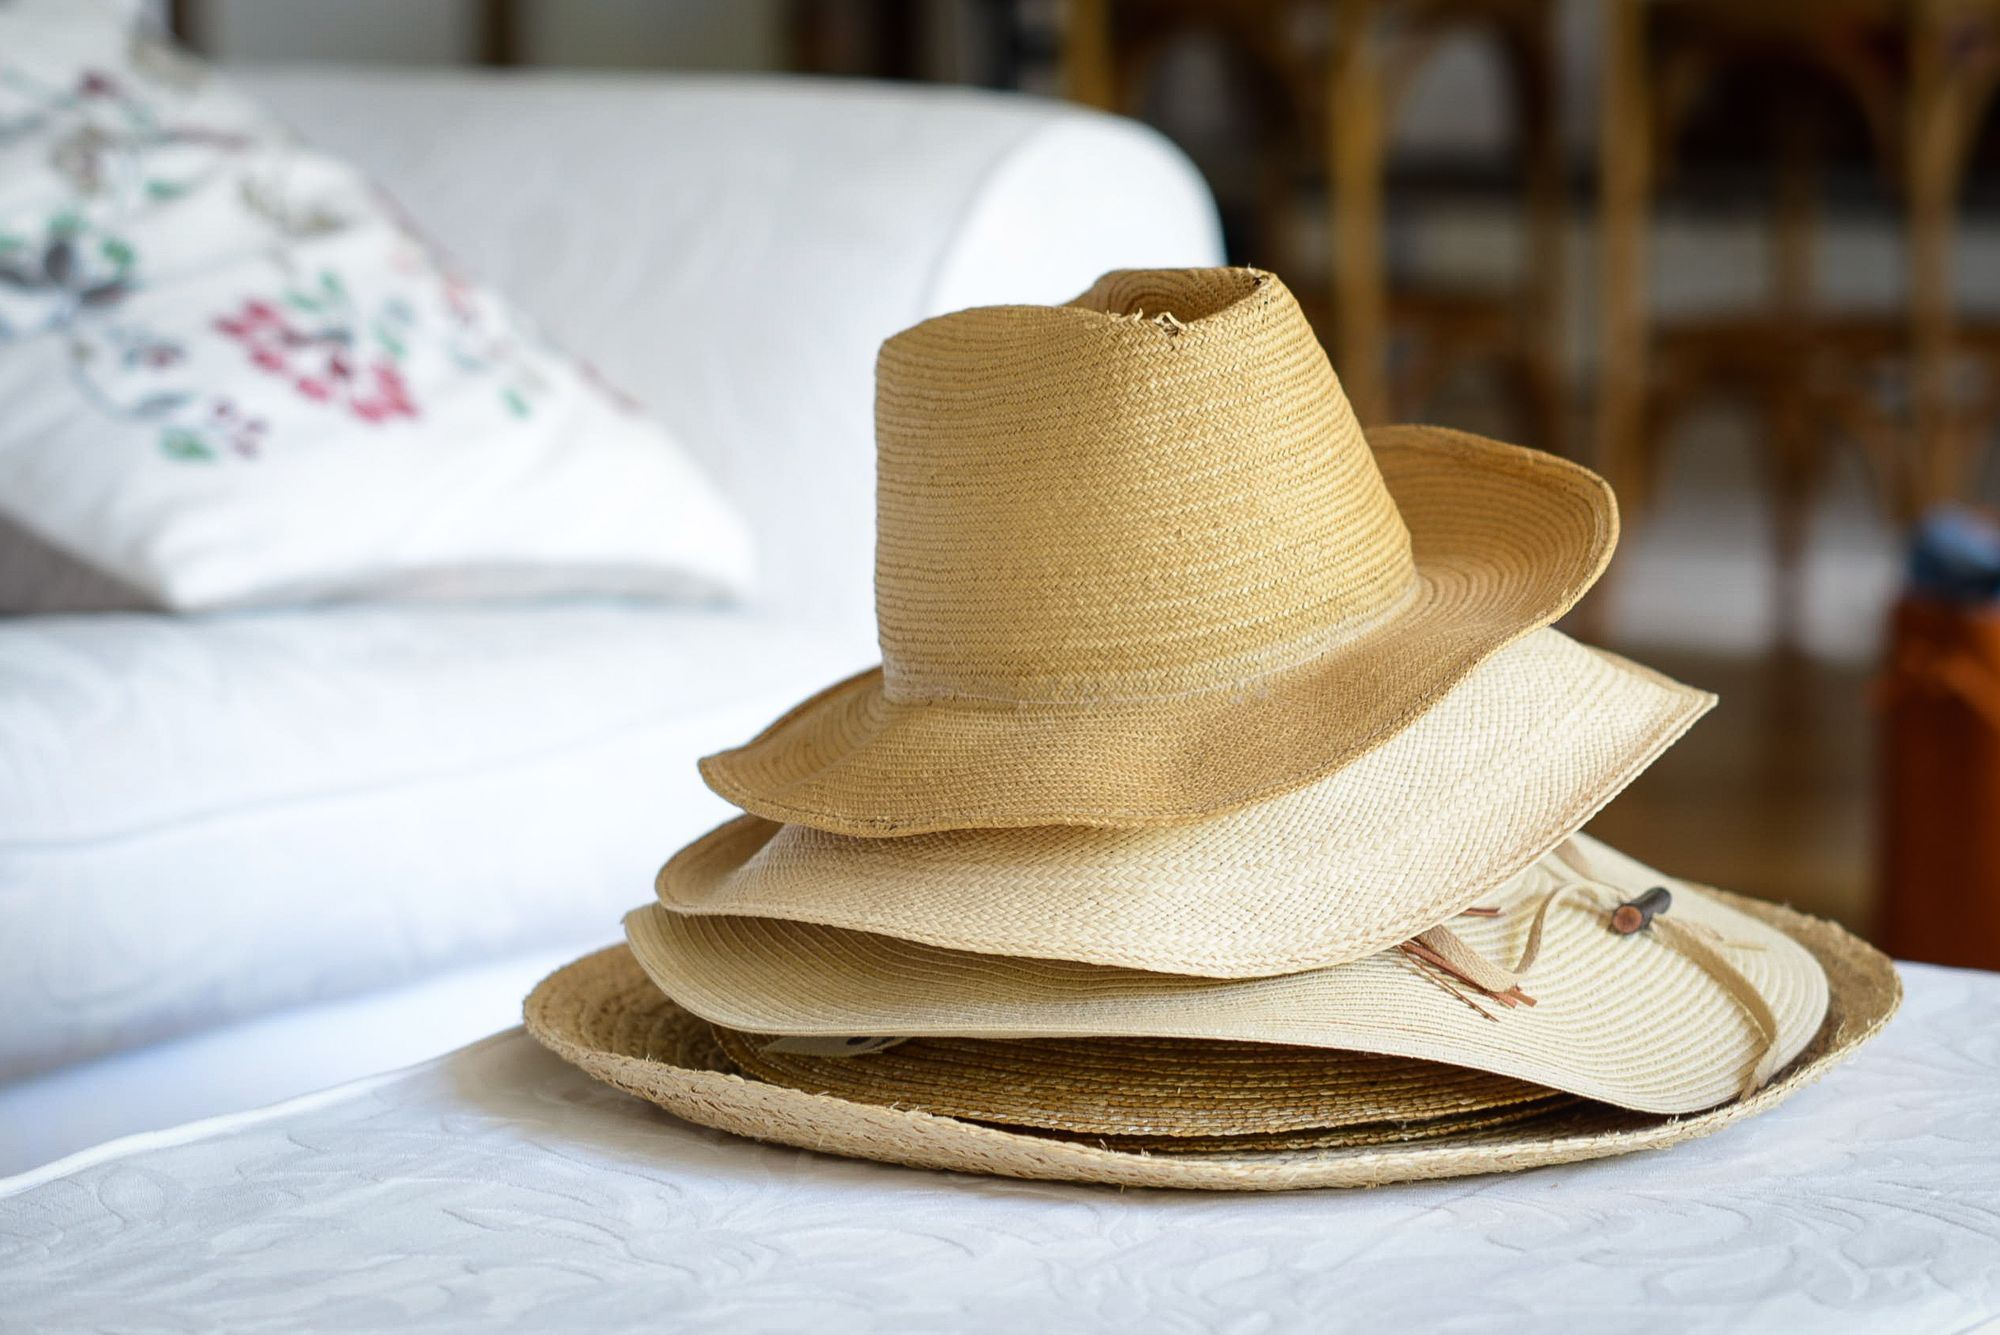 Four summer hats stacked on top of each other